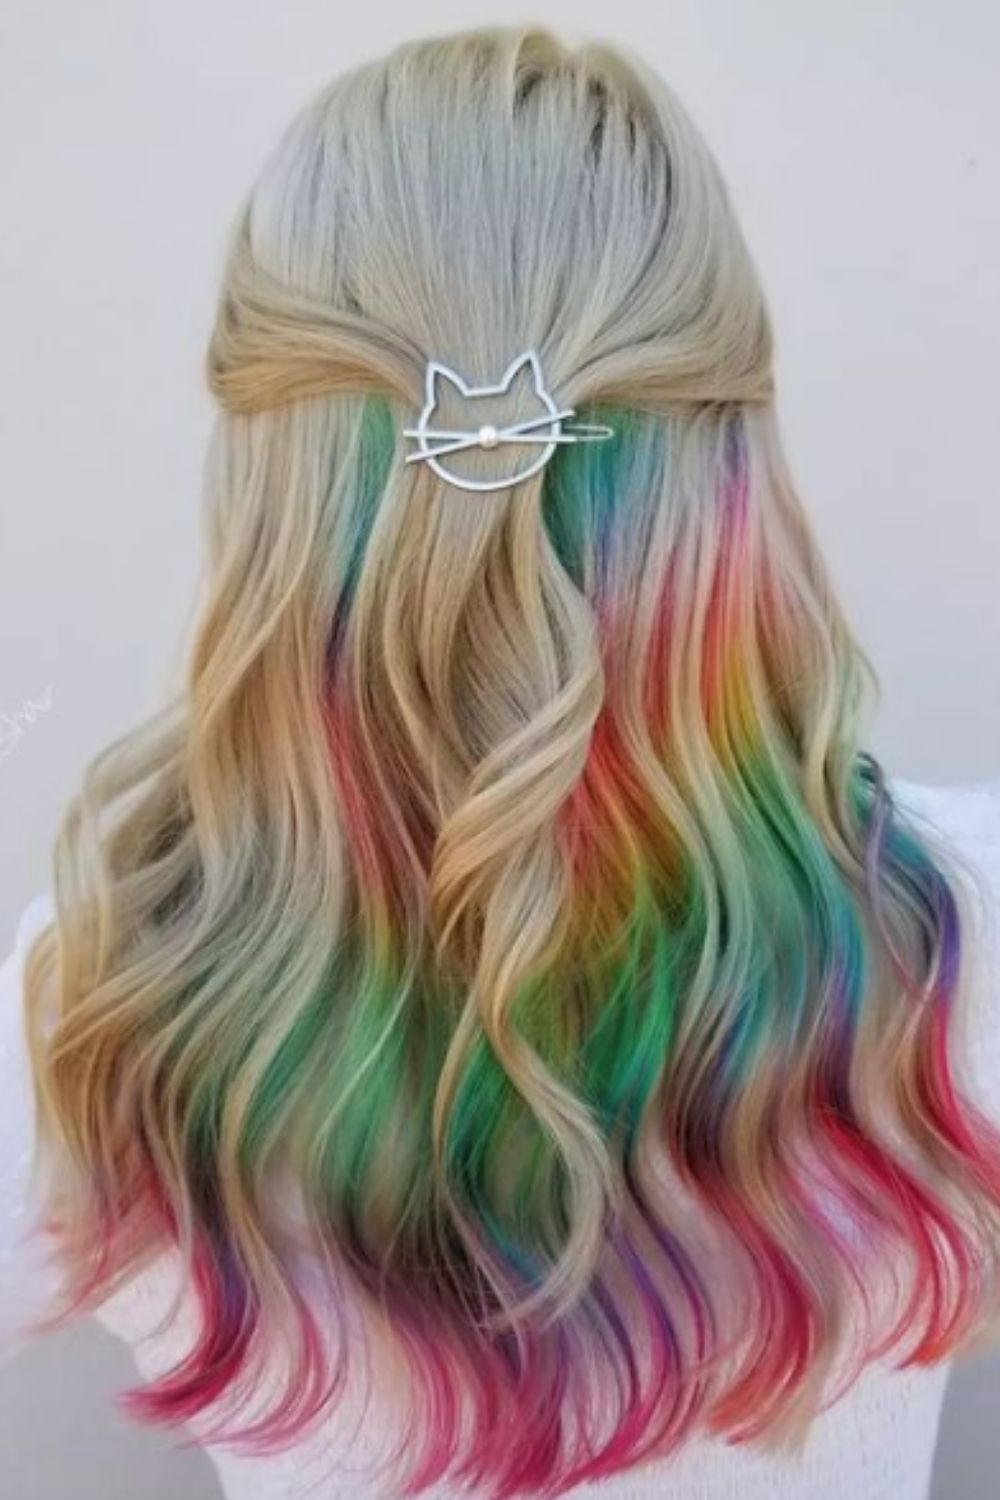 How to get unicorn hair?